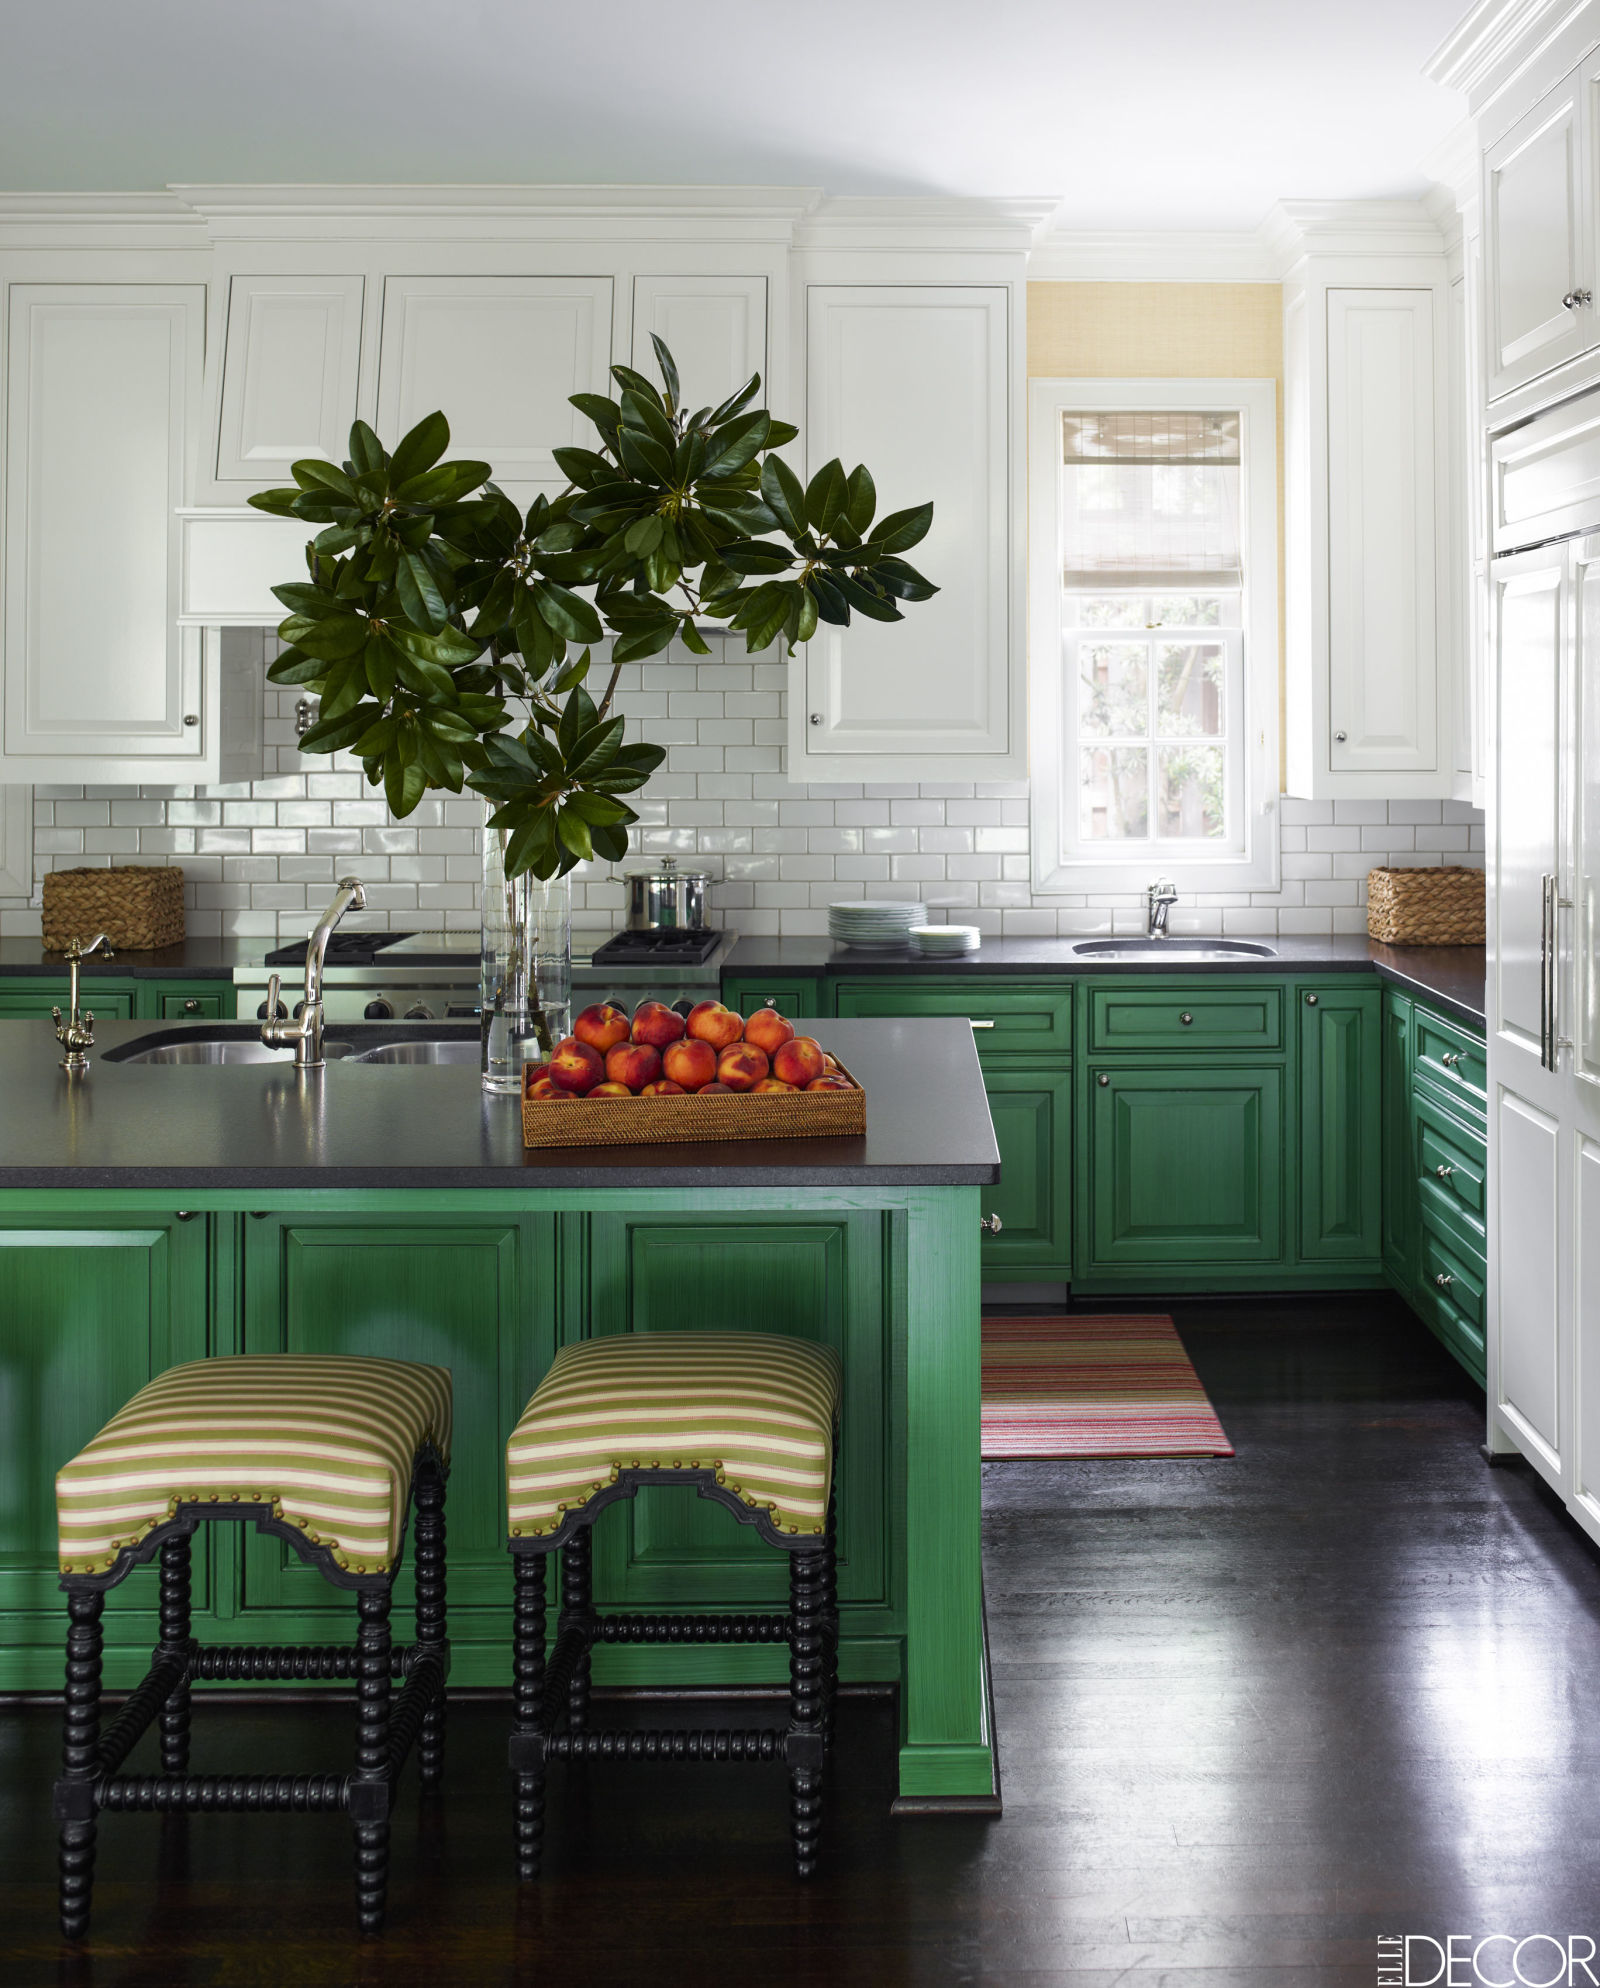 This kitchen feels like a green velvet cupcake with cream cheese frosting. Now that's friendly!   Design by J. Randall Powers, Elle Decor July 2016, Photo: Eric Piasecki